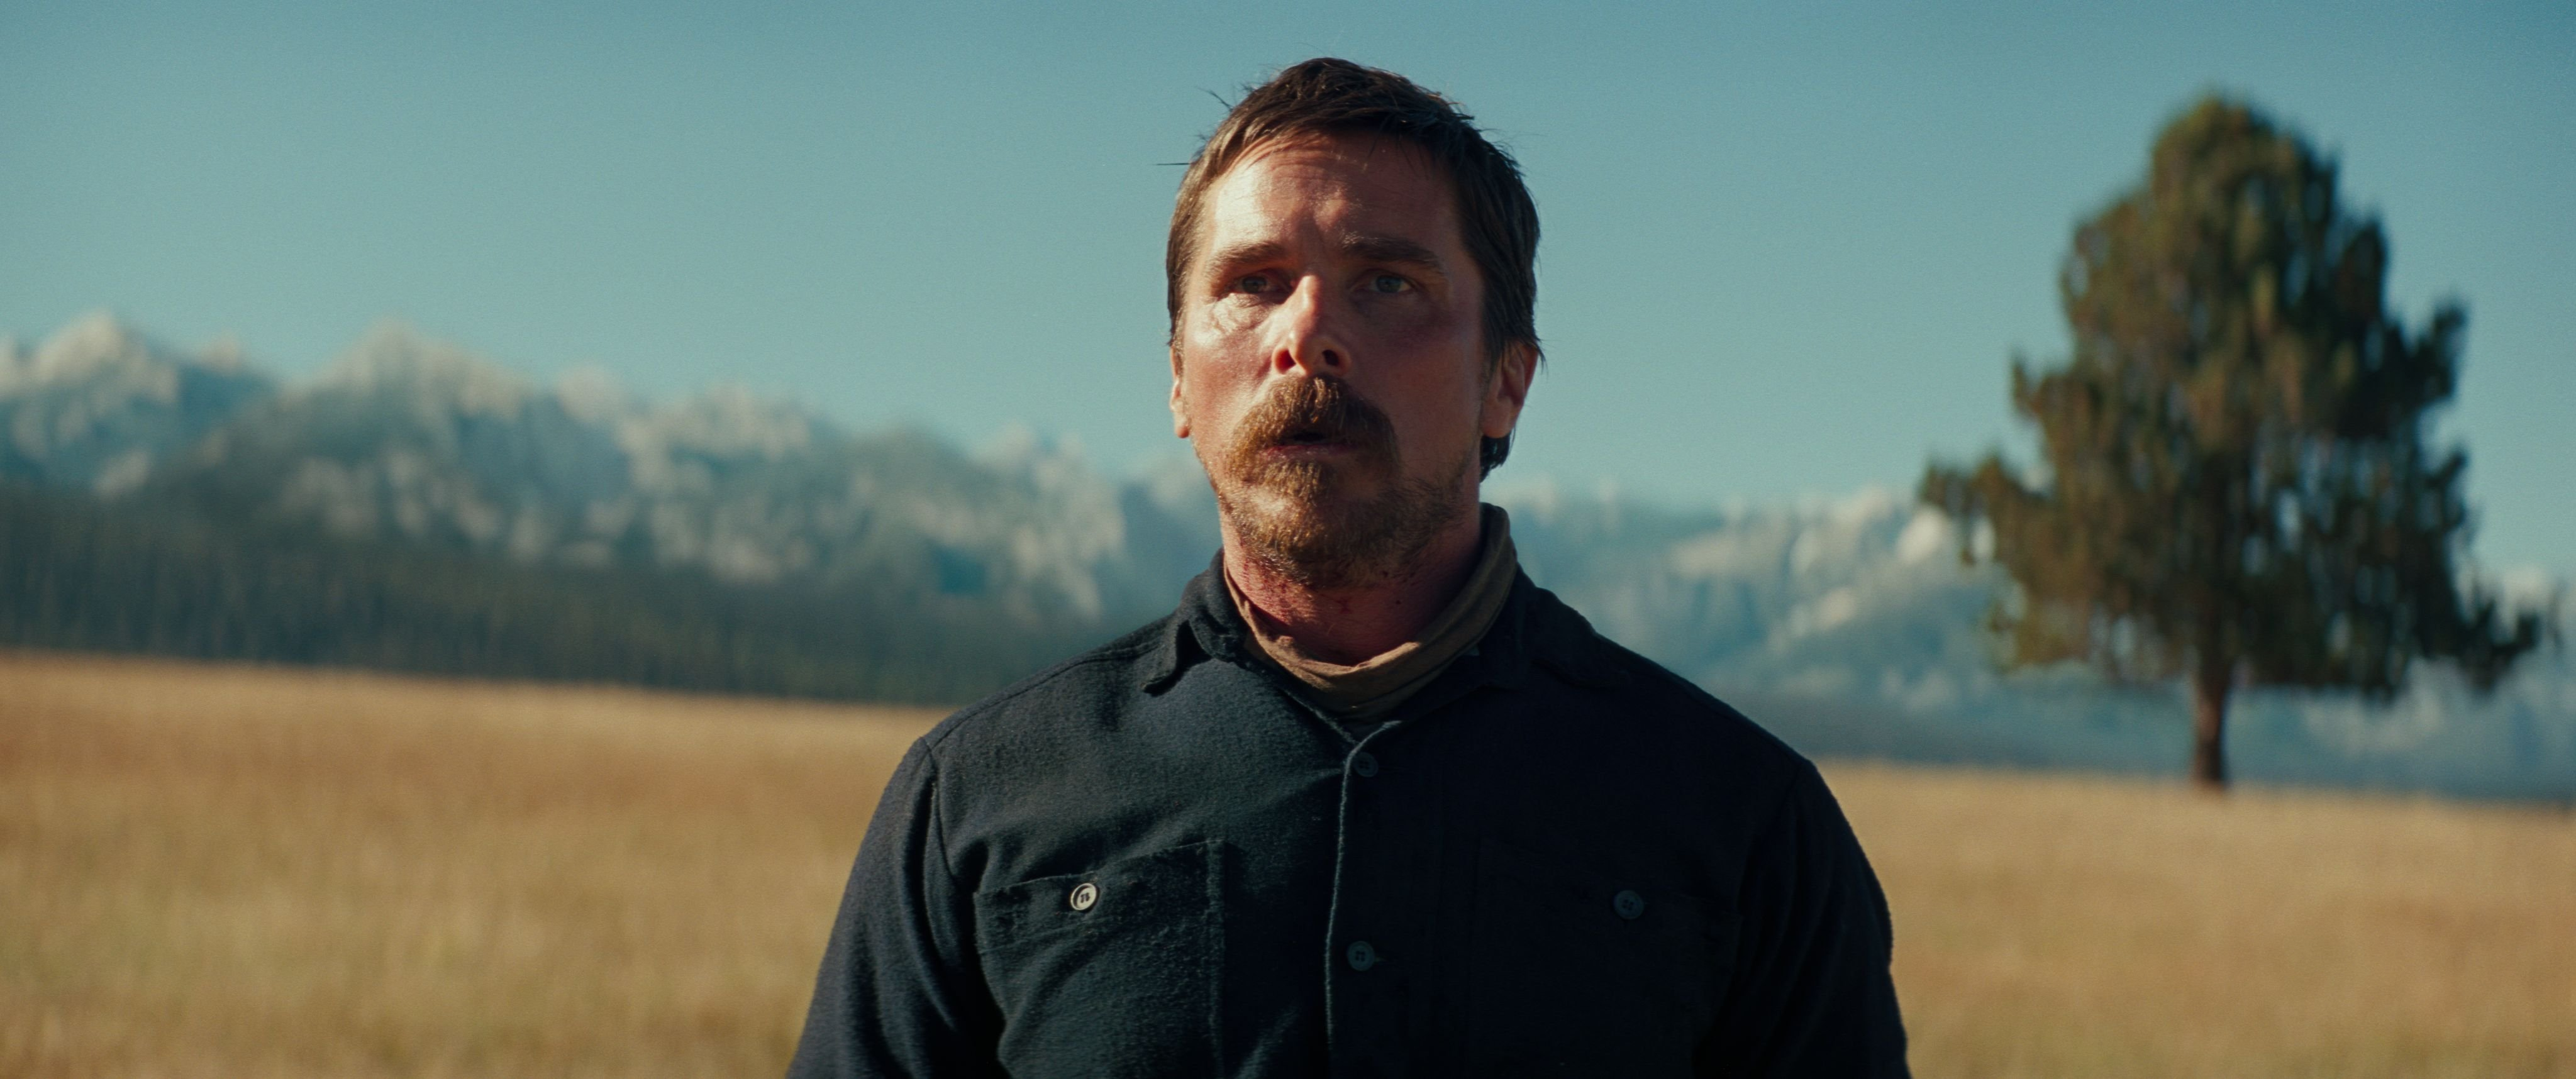 Christian Bale als Capt. Joseph J. Blocker in Hostiles - Feinde